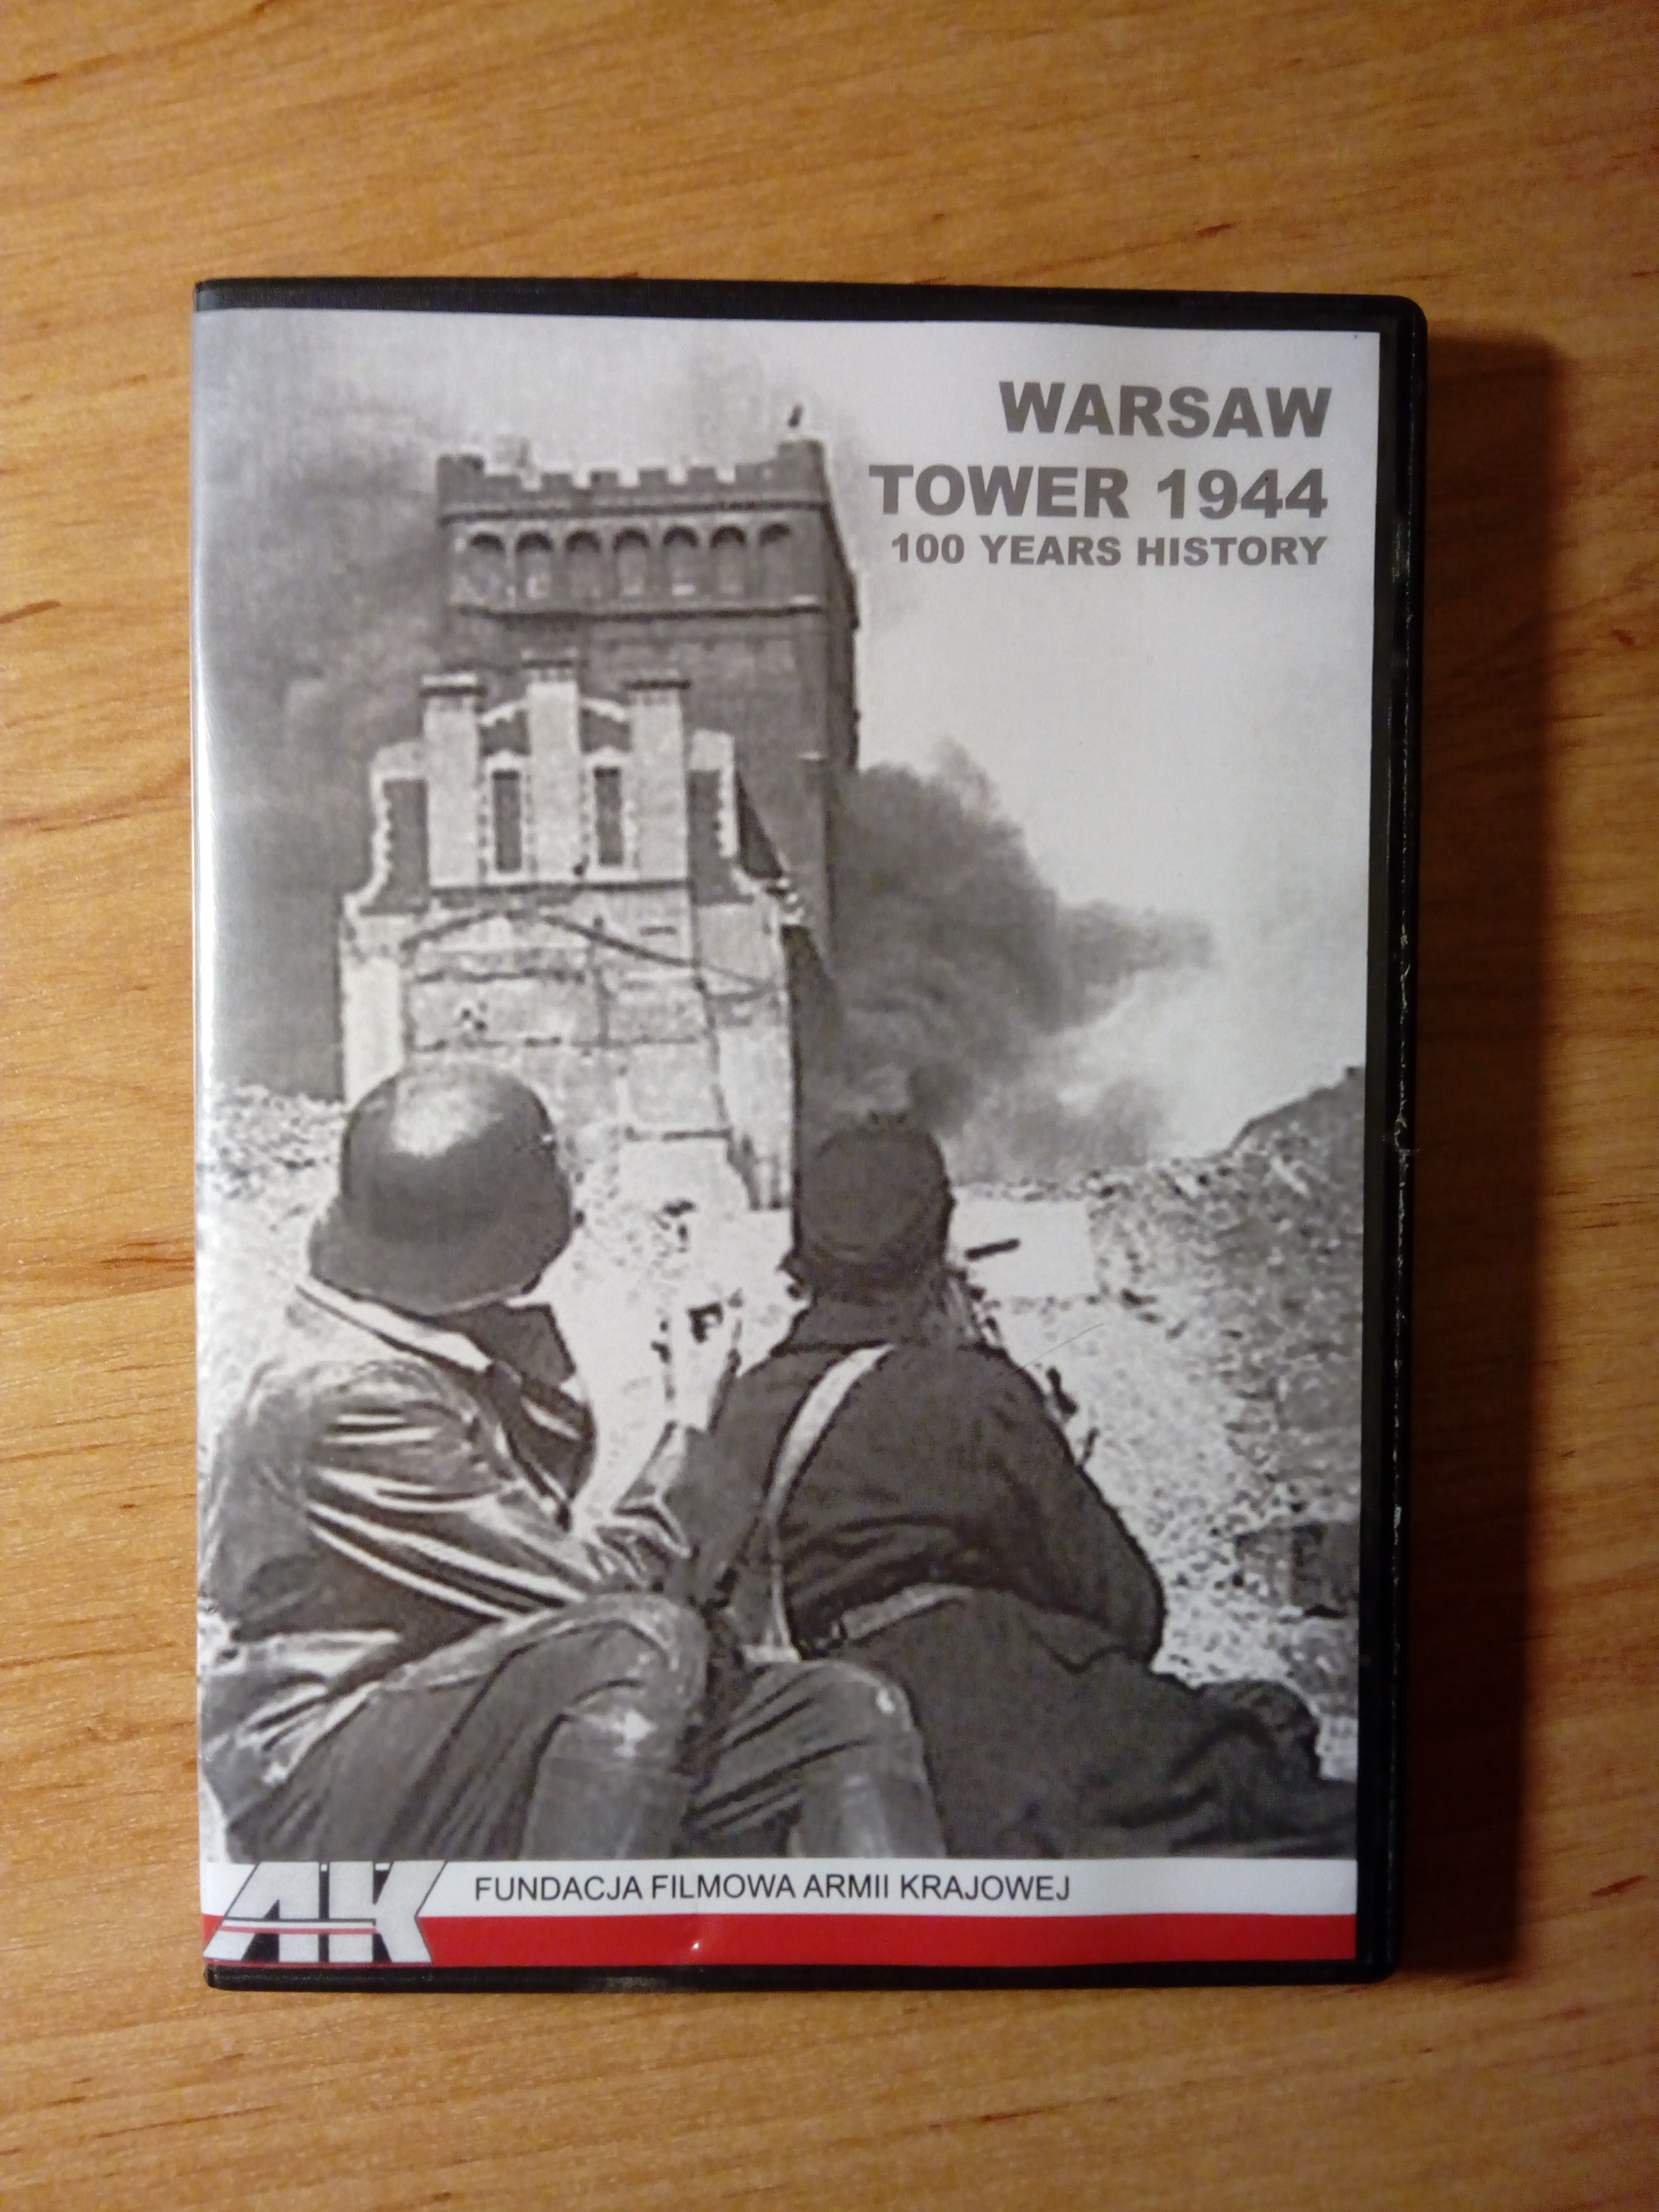 Warsaw Tower 1944 DVD 100 Years History (M.Widarski)